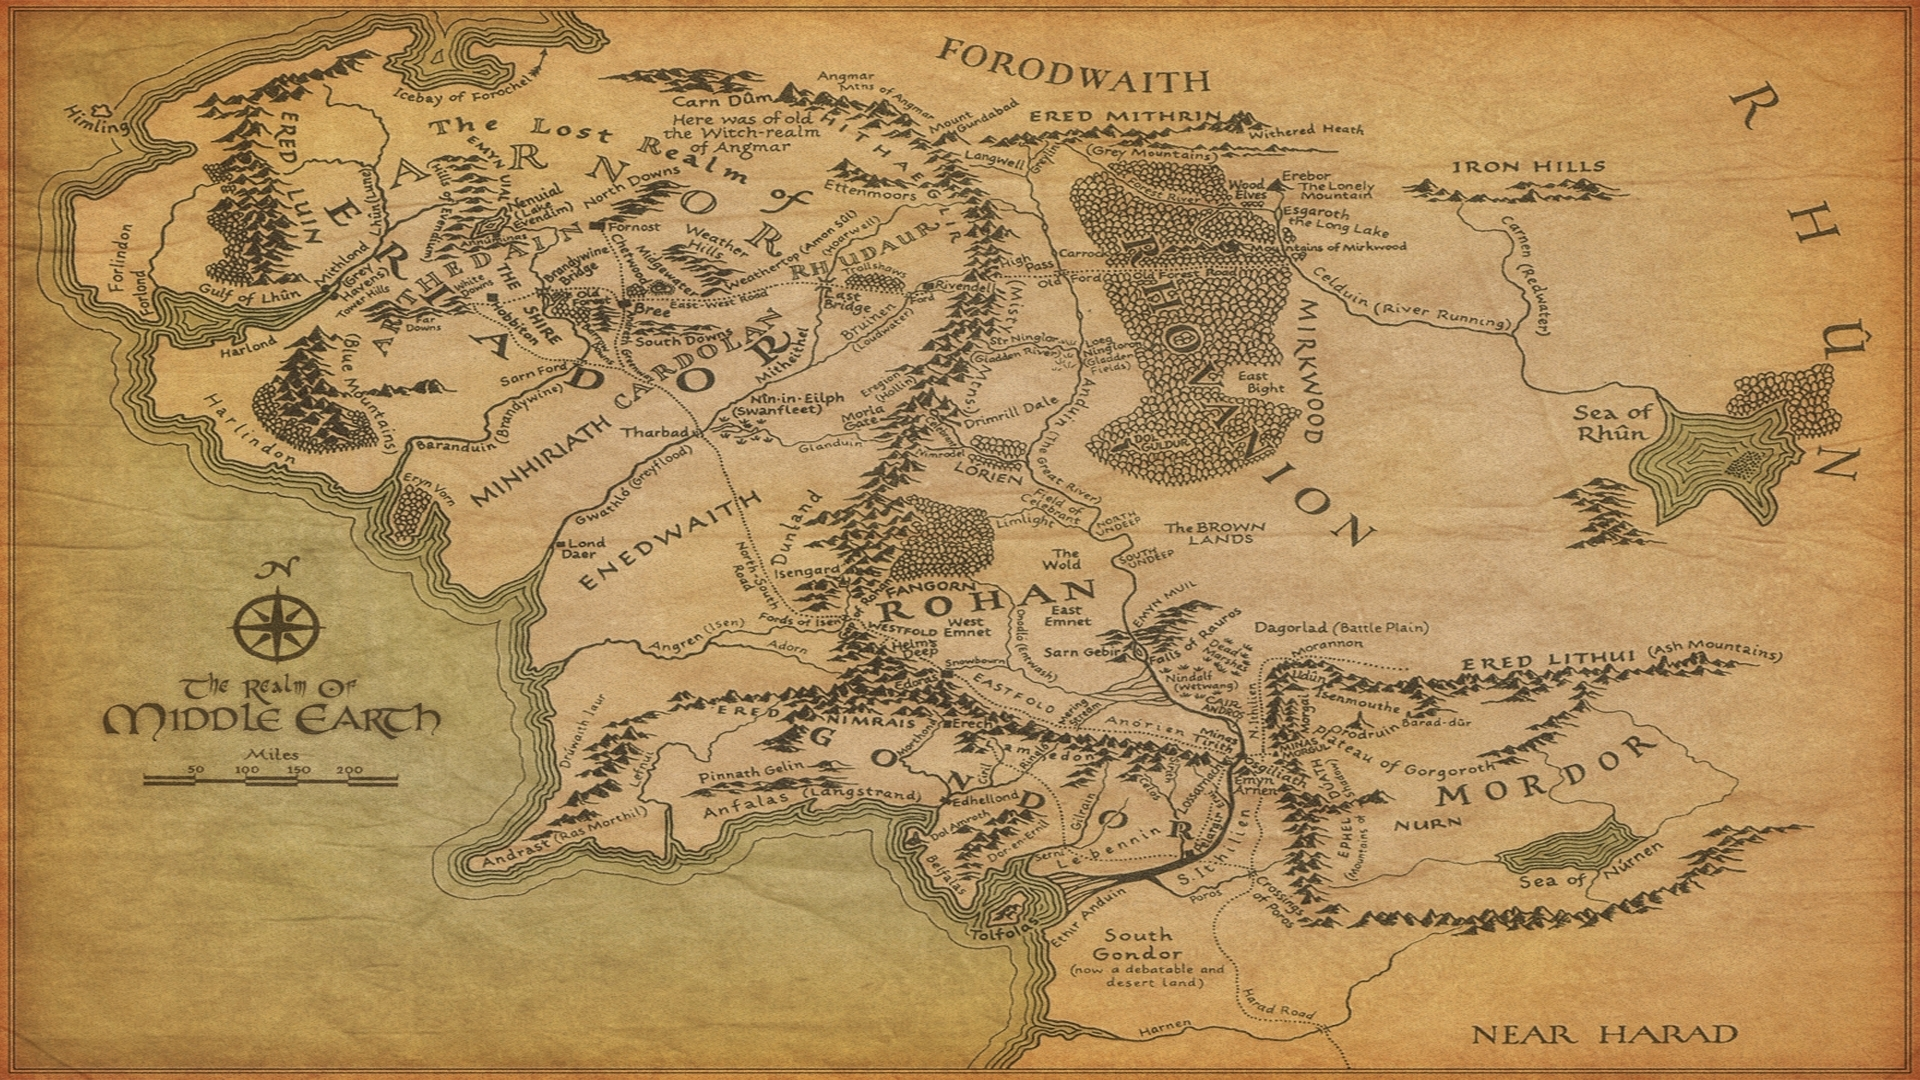 the lord of the rings fantasy art maps 1920x1080 wallpaper Wallpaper 1920x1080